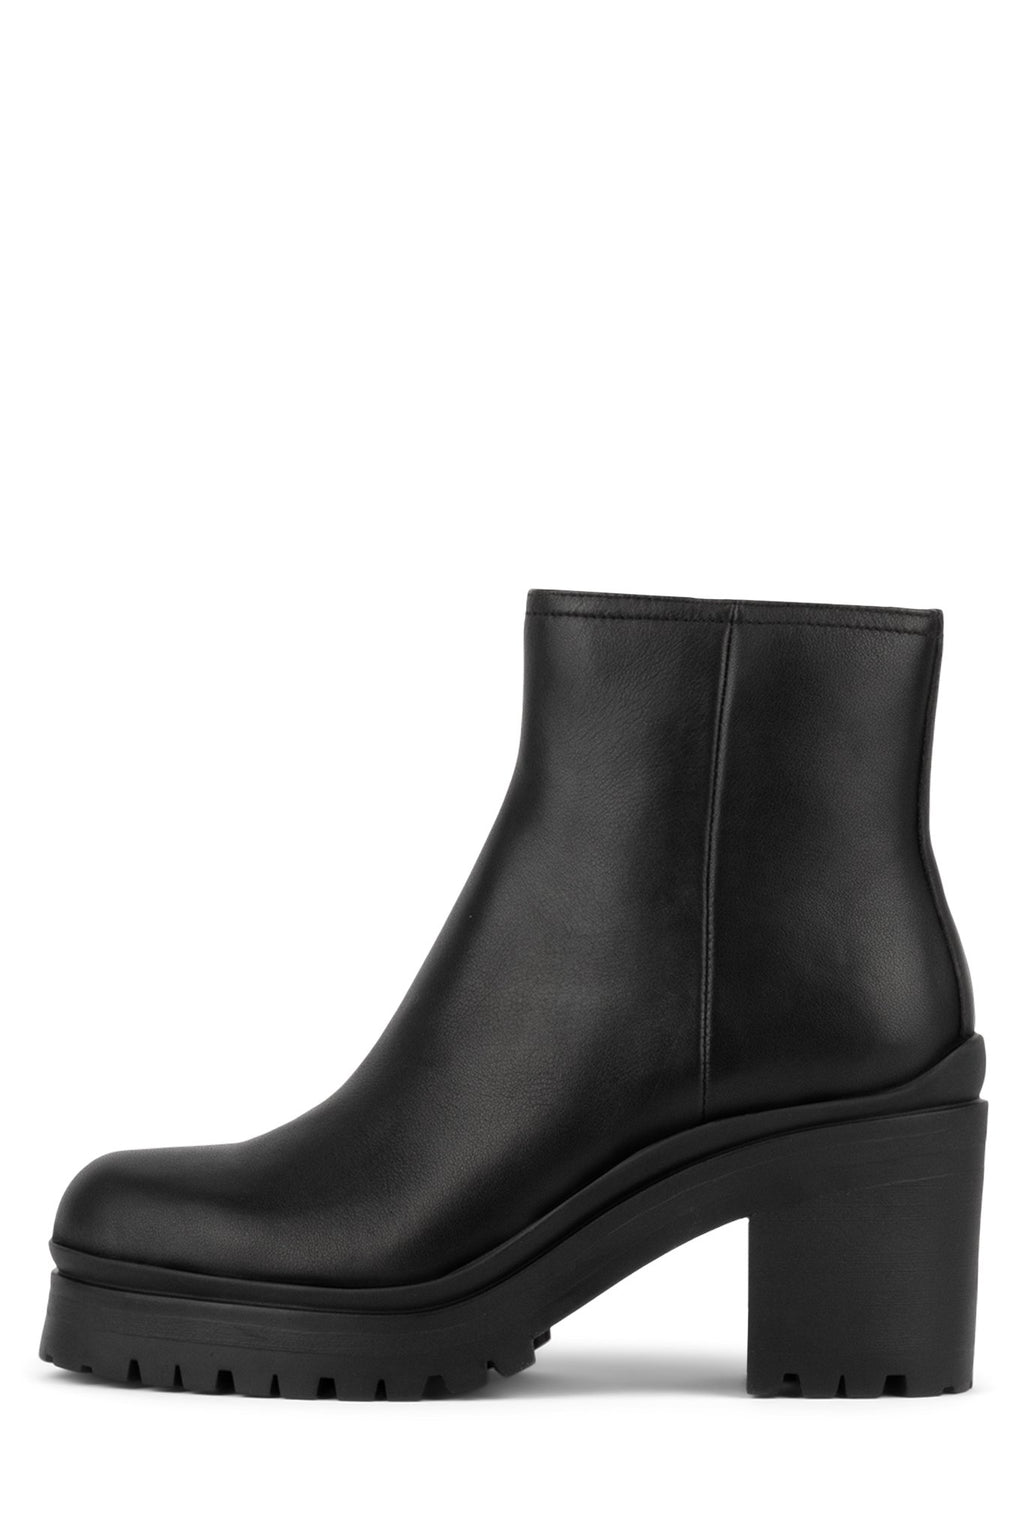 TRACKER Platform Boot Jeffrey Campbell Black 6